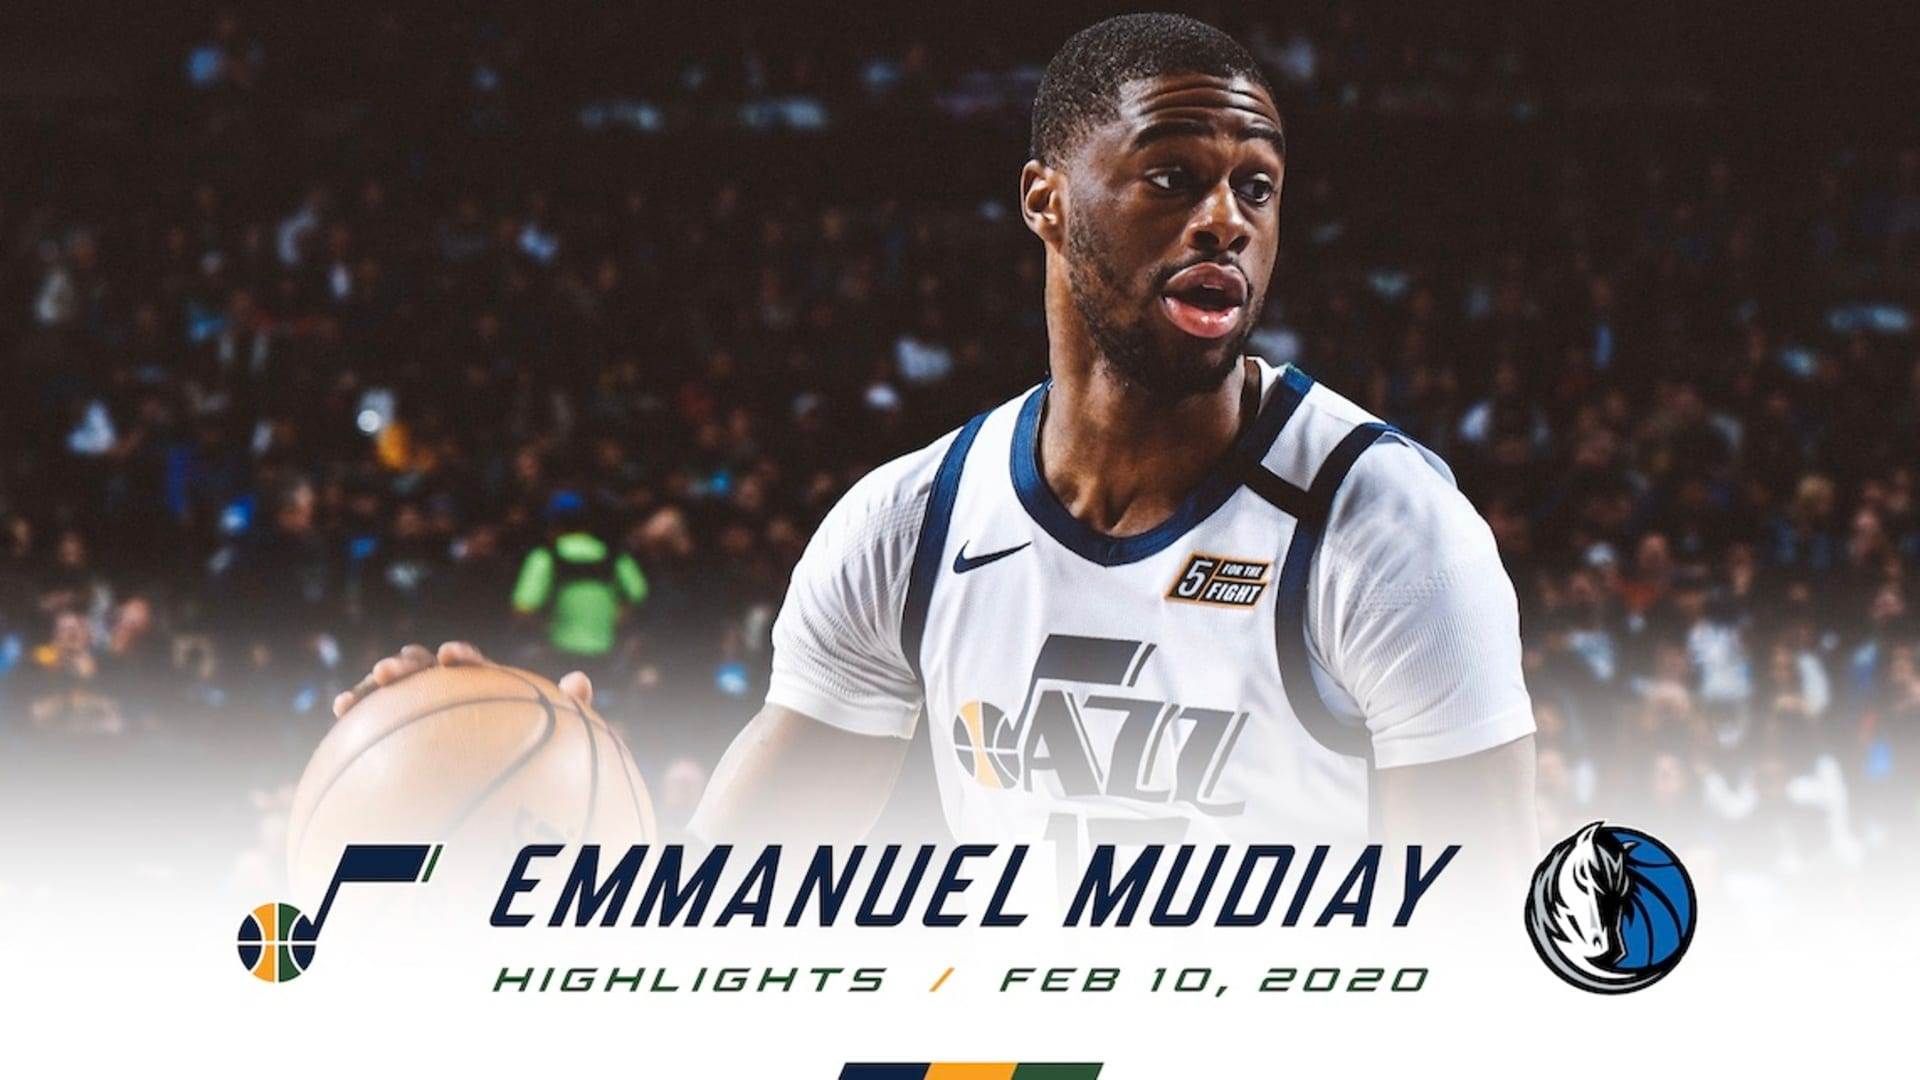 Highlights: Emmanuel Mudiay — 12 points, 3 rebounds